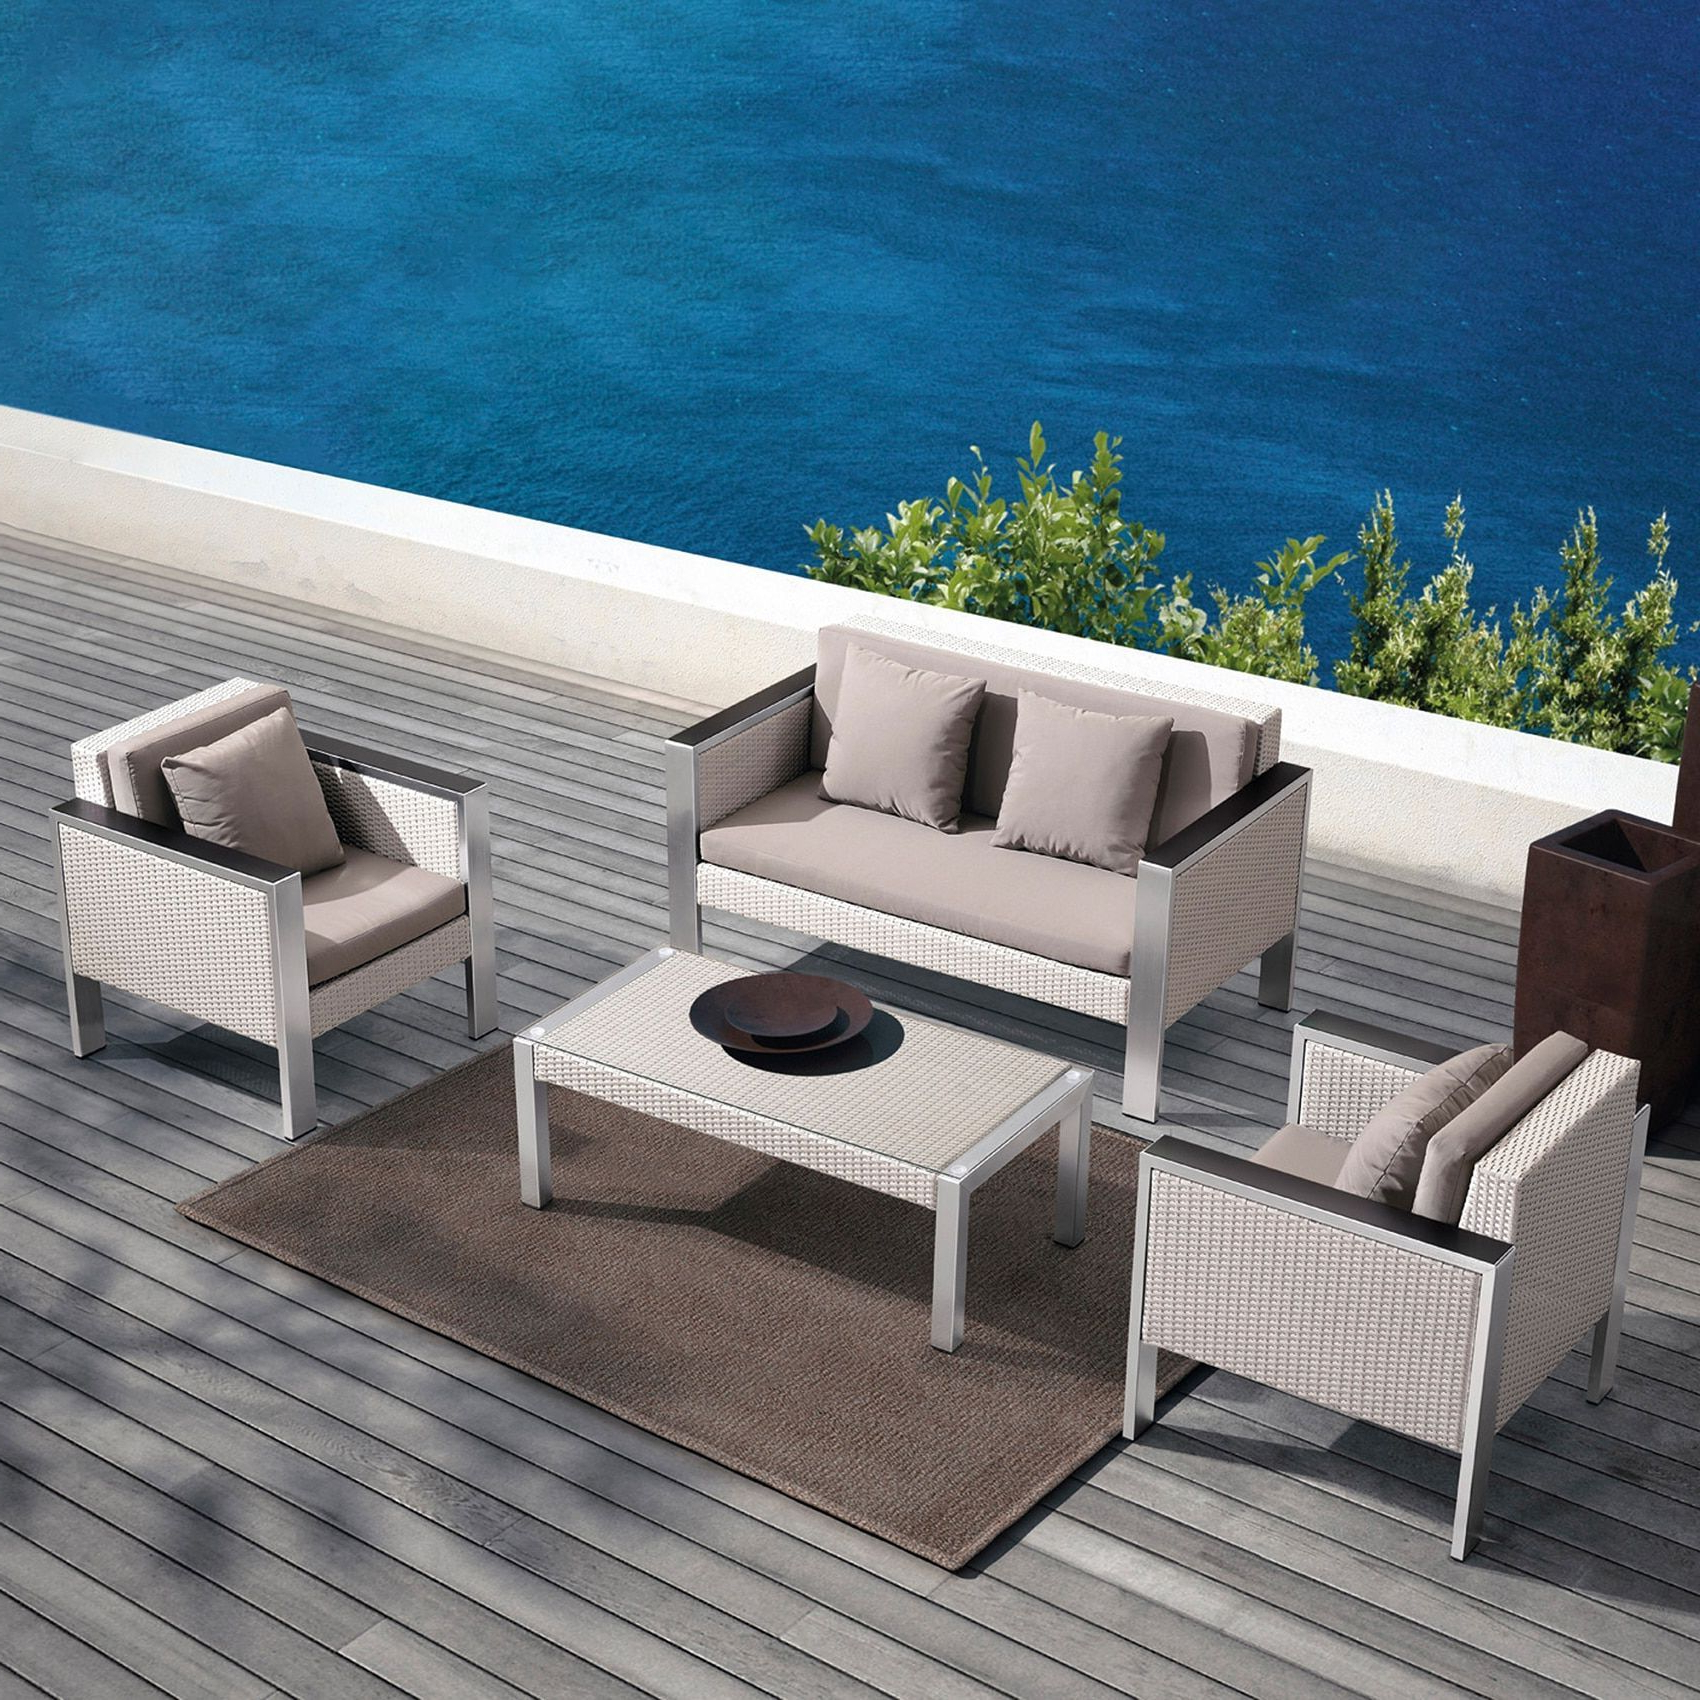 Deandra Loveseats With Cushions With Regard To Well Known Armen Living Watercube 4 Piece Outdoor White Rattan Set With (View 11 of 25)